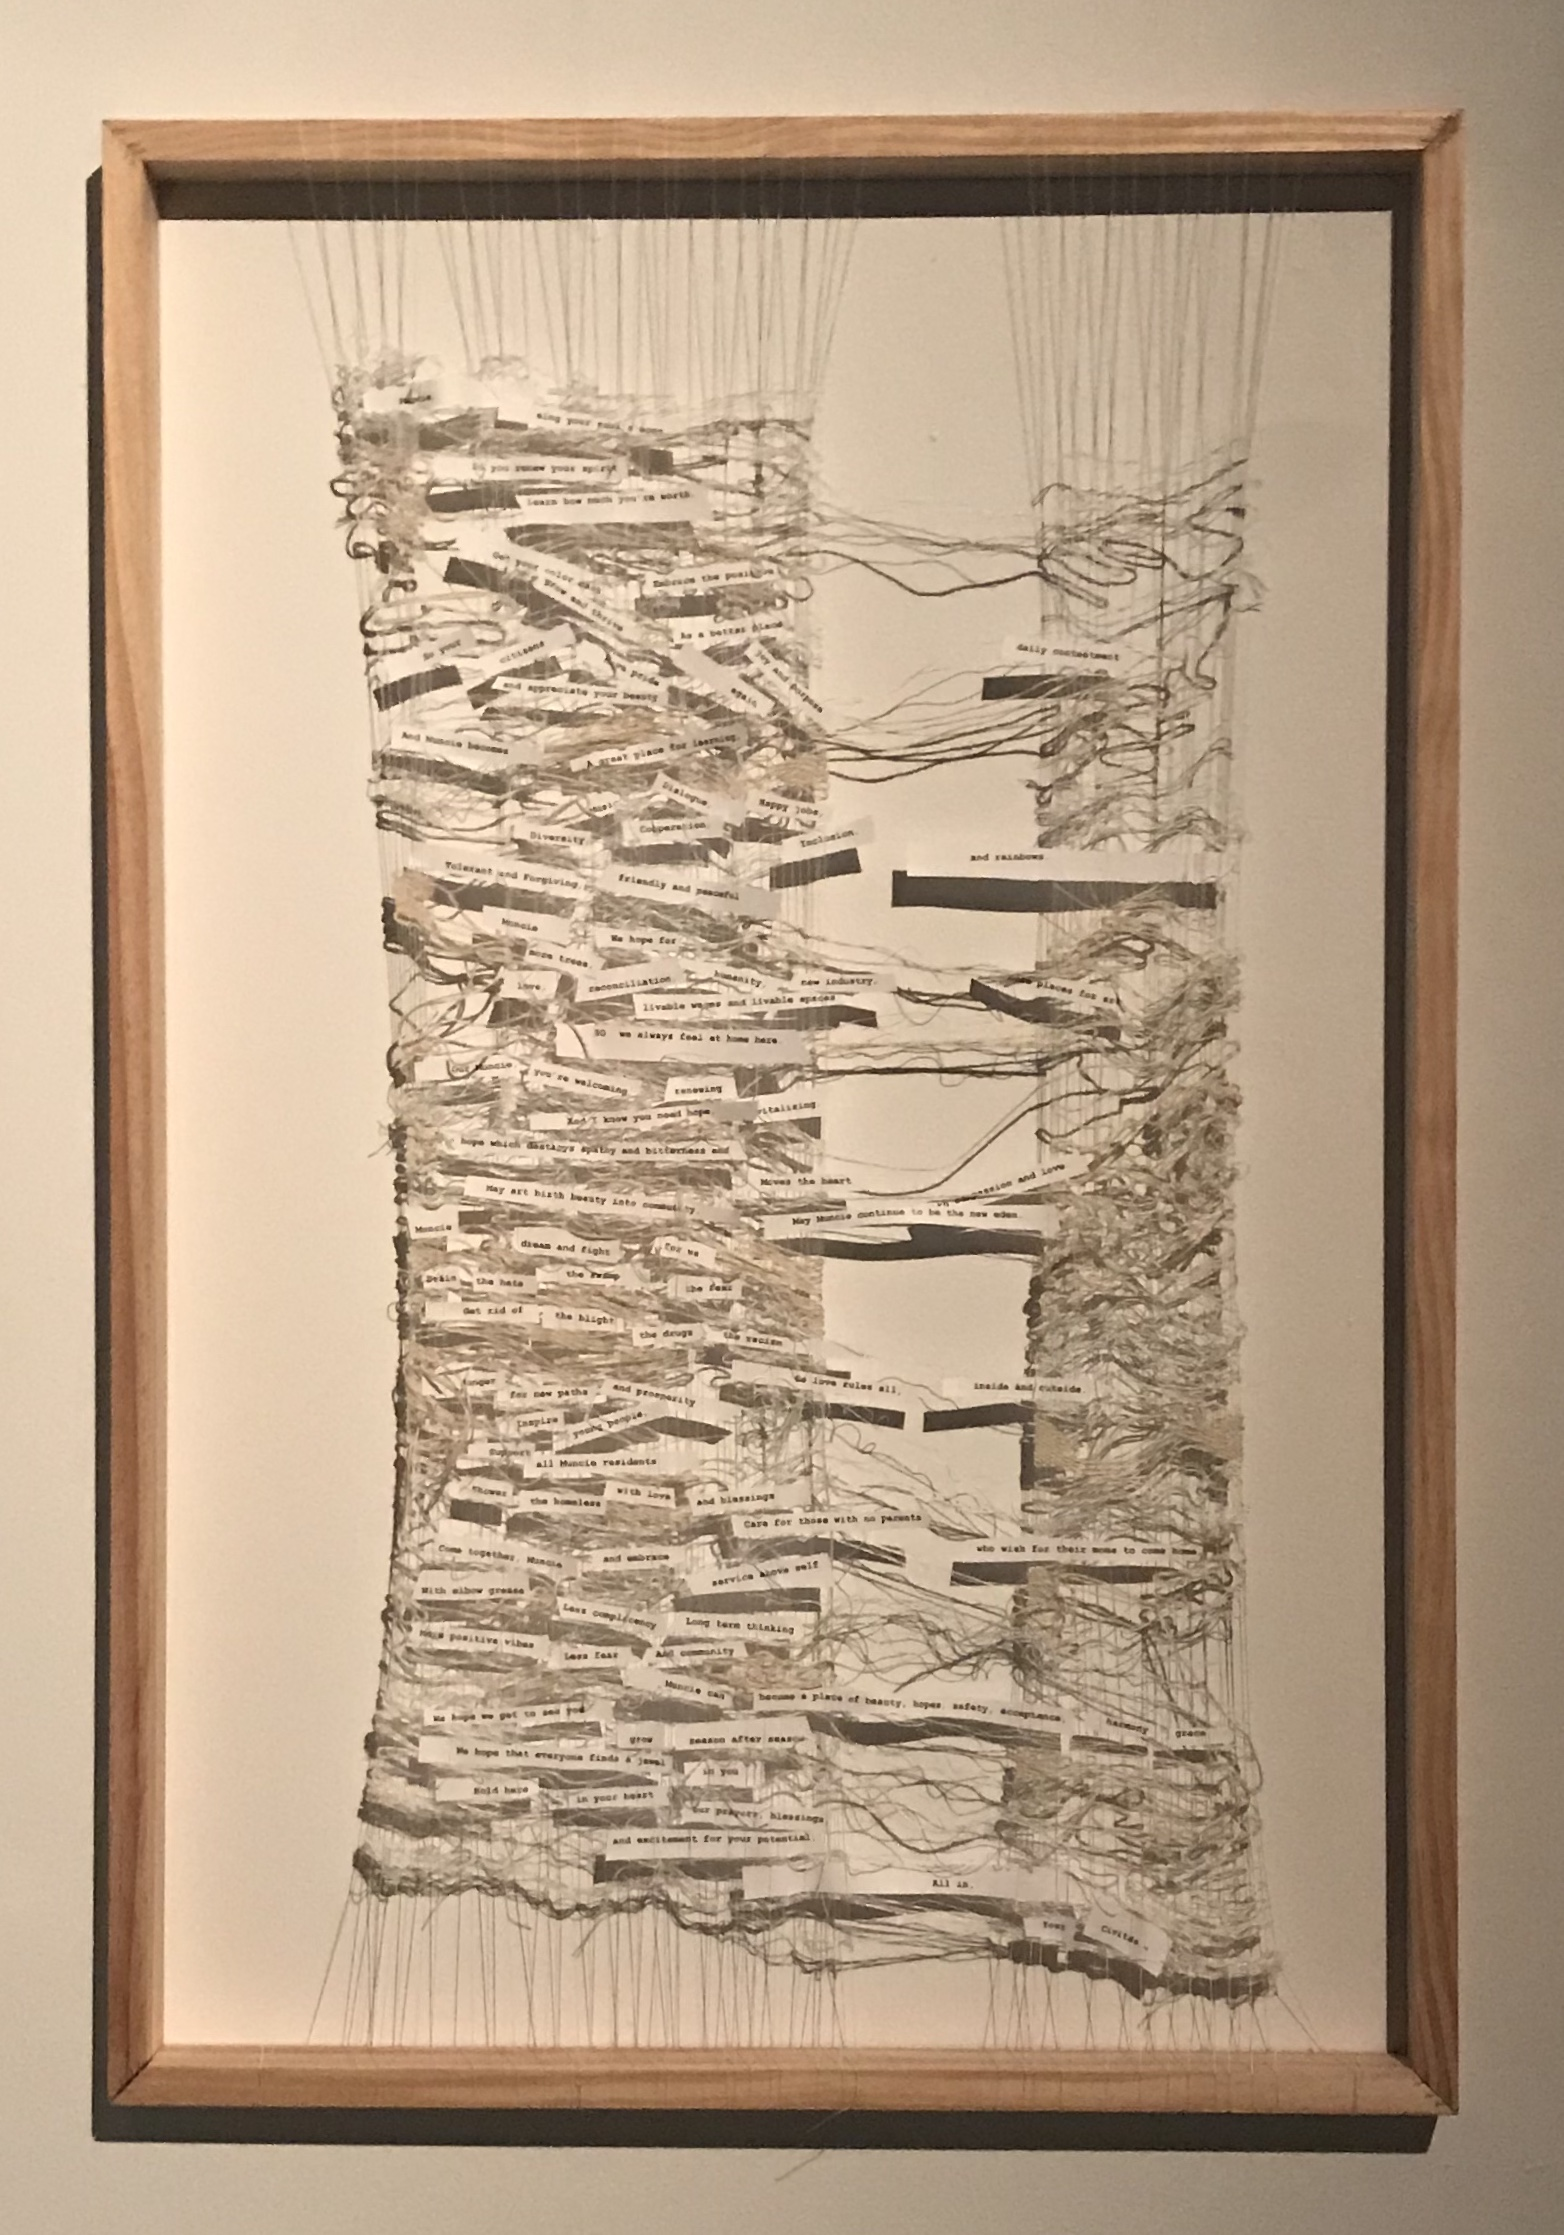 Woven Hopes, A Song to Muncie  (2018)   wood, silk, stainless steel, hemp, paper, ink  36 x 24 x 1in